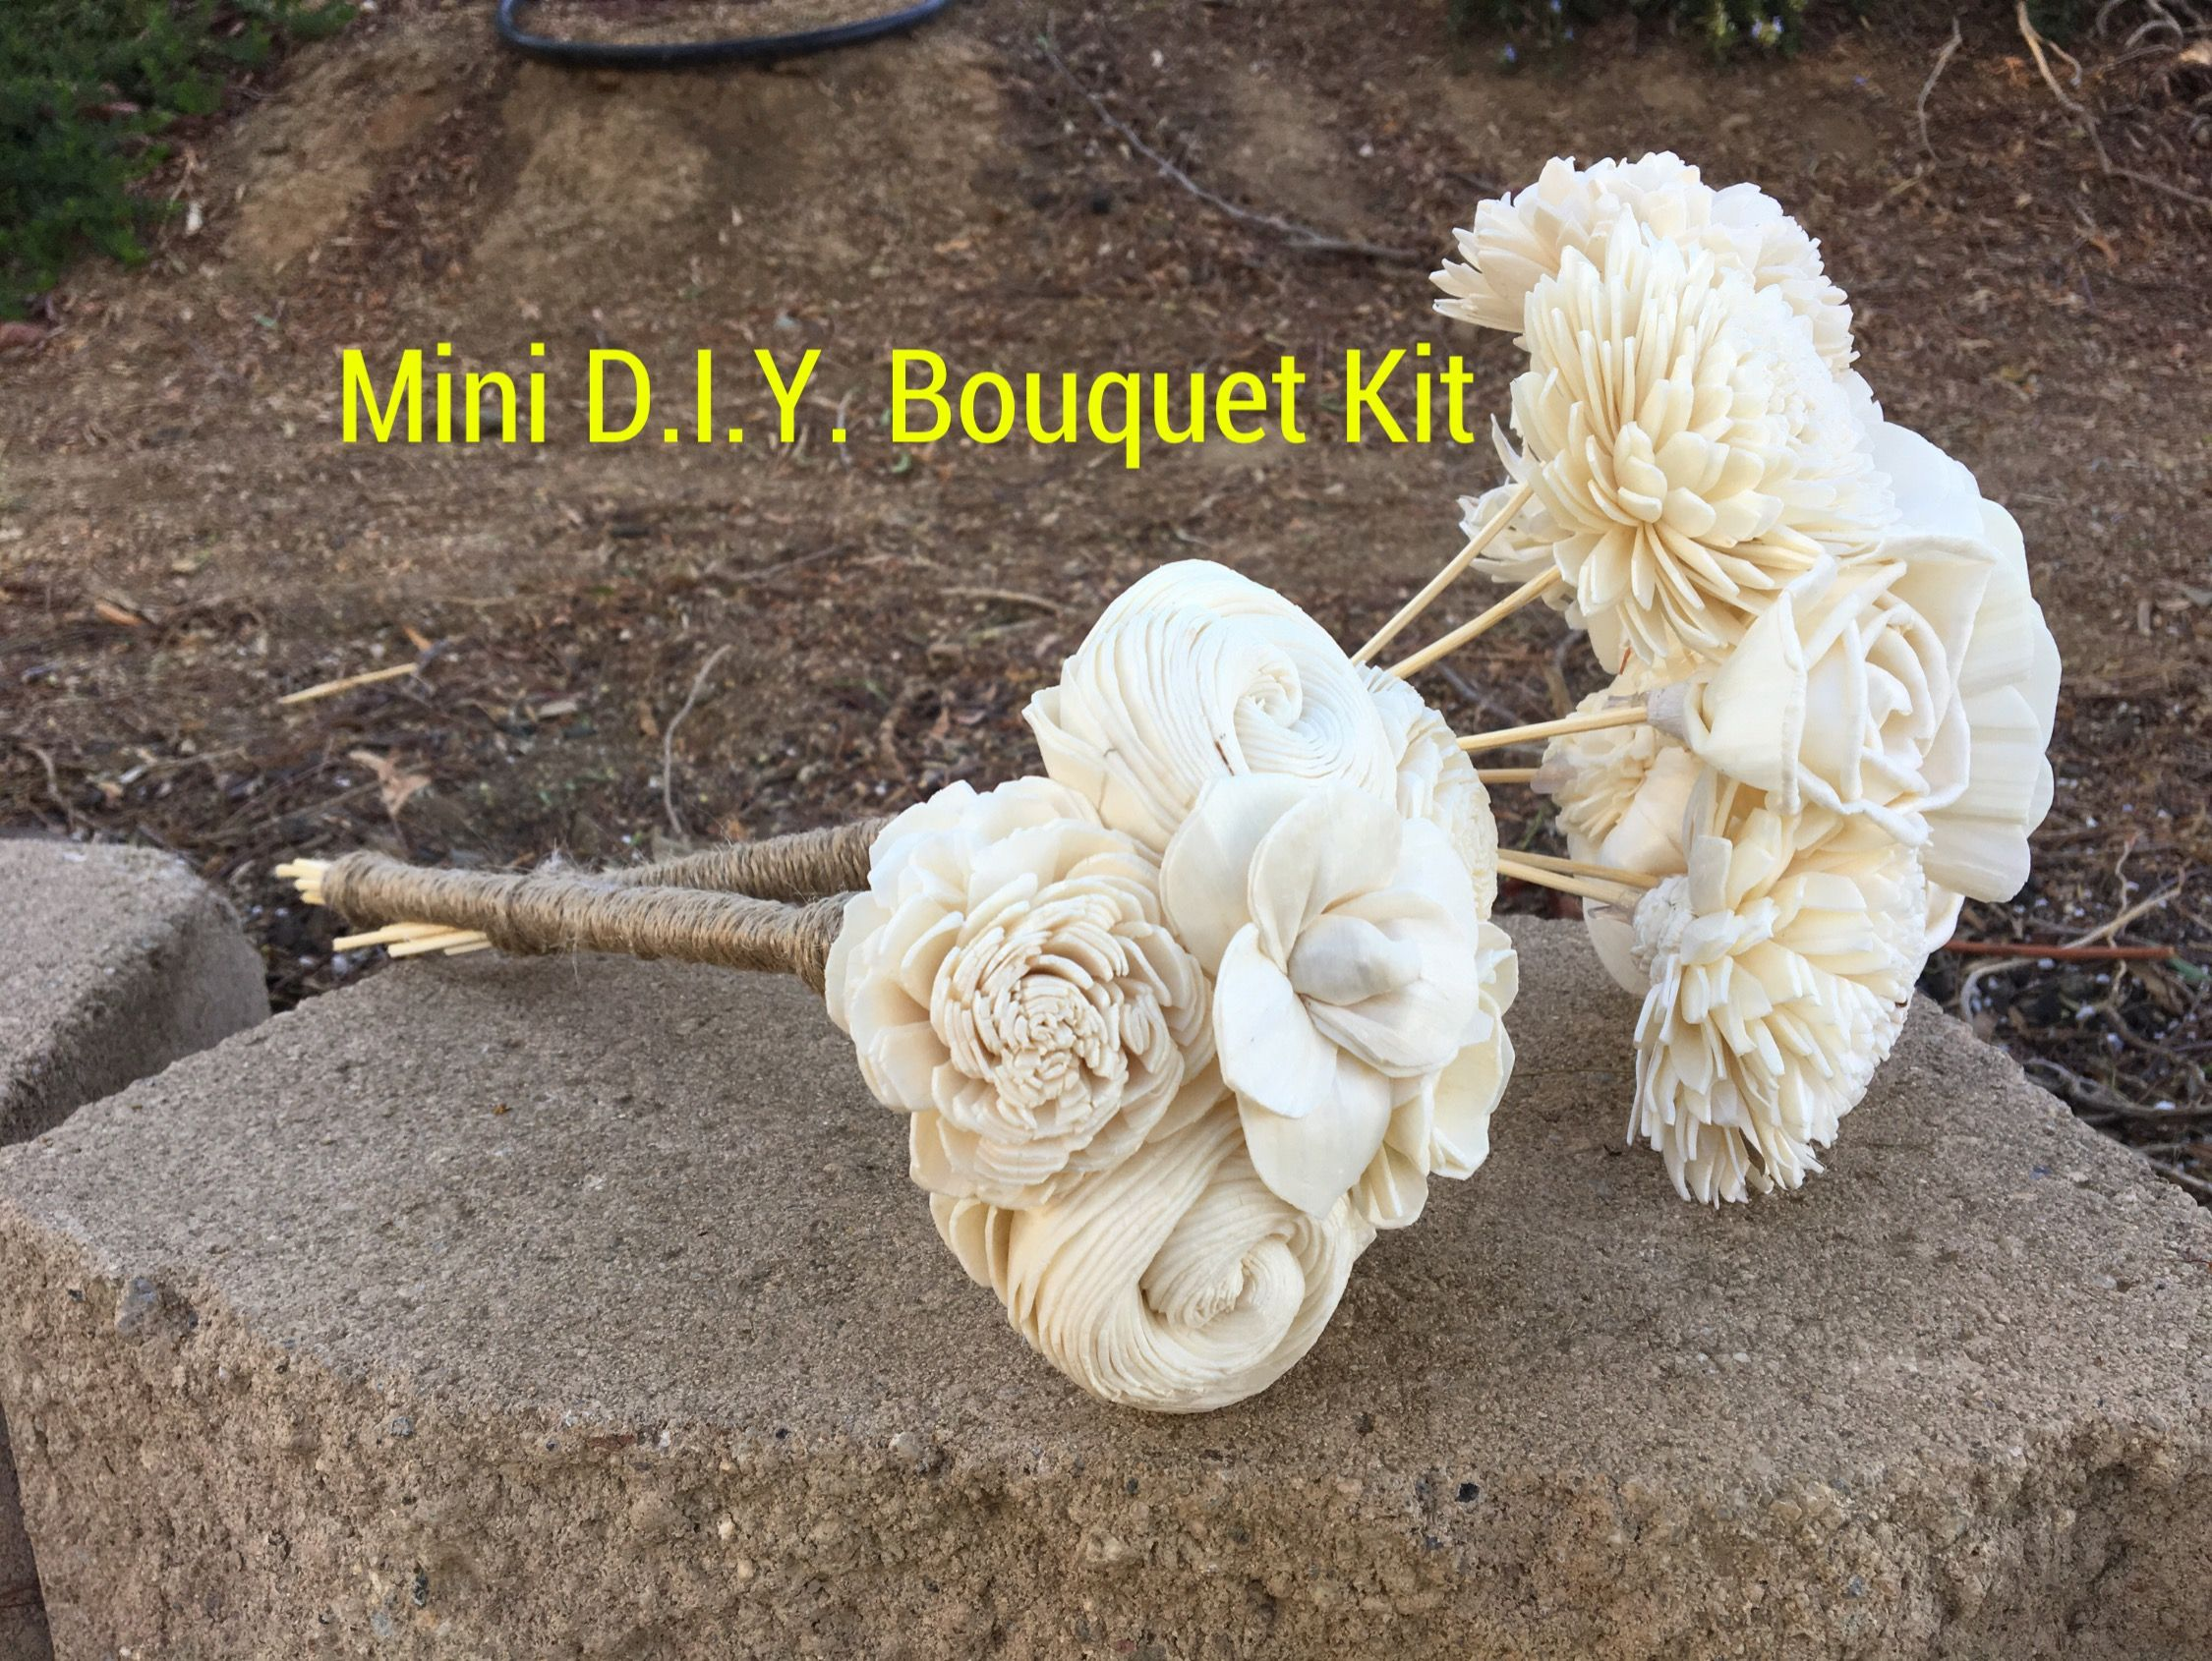 Mini bouquet diy kits made with wood flowers by luv2diy sola mini bouquet diy kits made with wood flowers by luv2diy izmirmasajfo